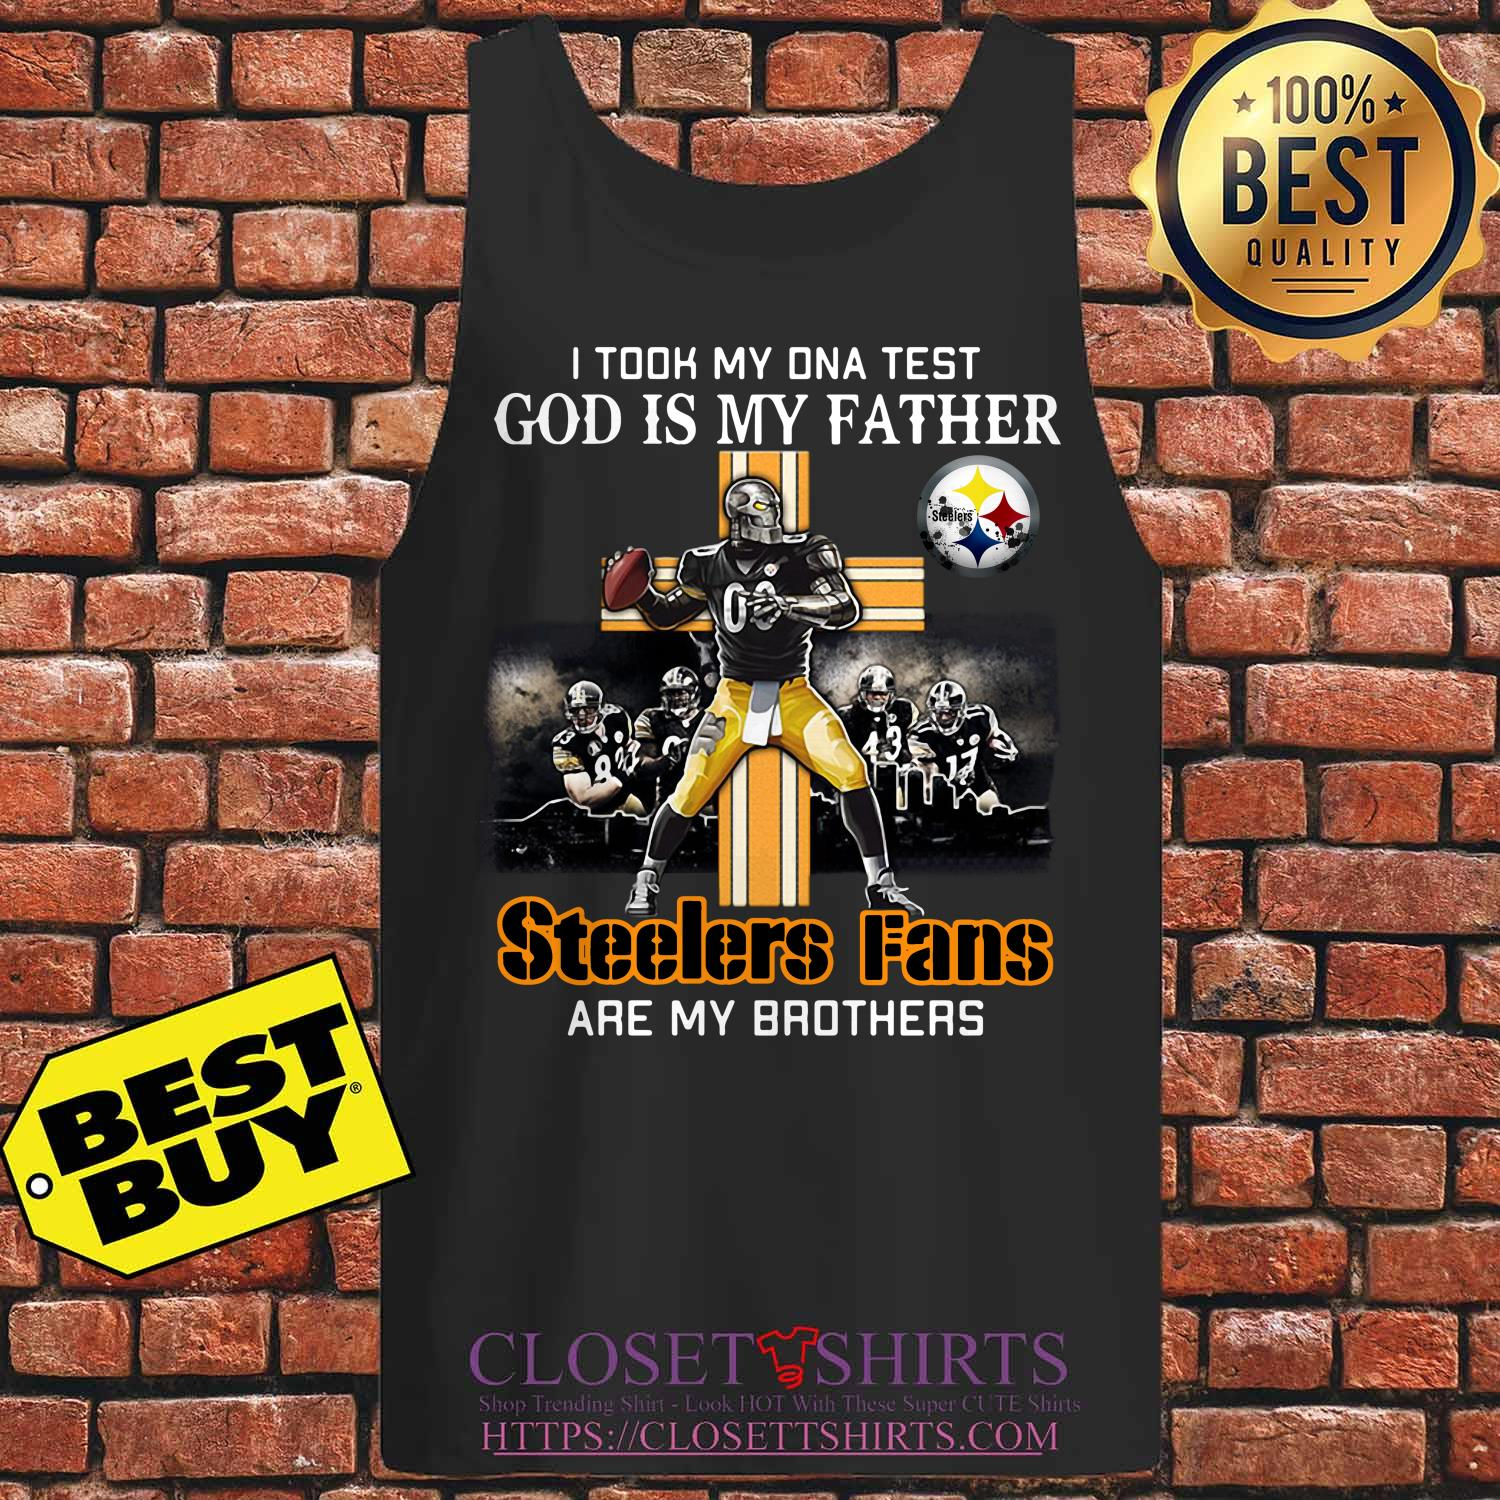 Took Dna Test God Father Pittsburgh Steelers Fans Brothers Tank Top